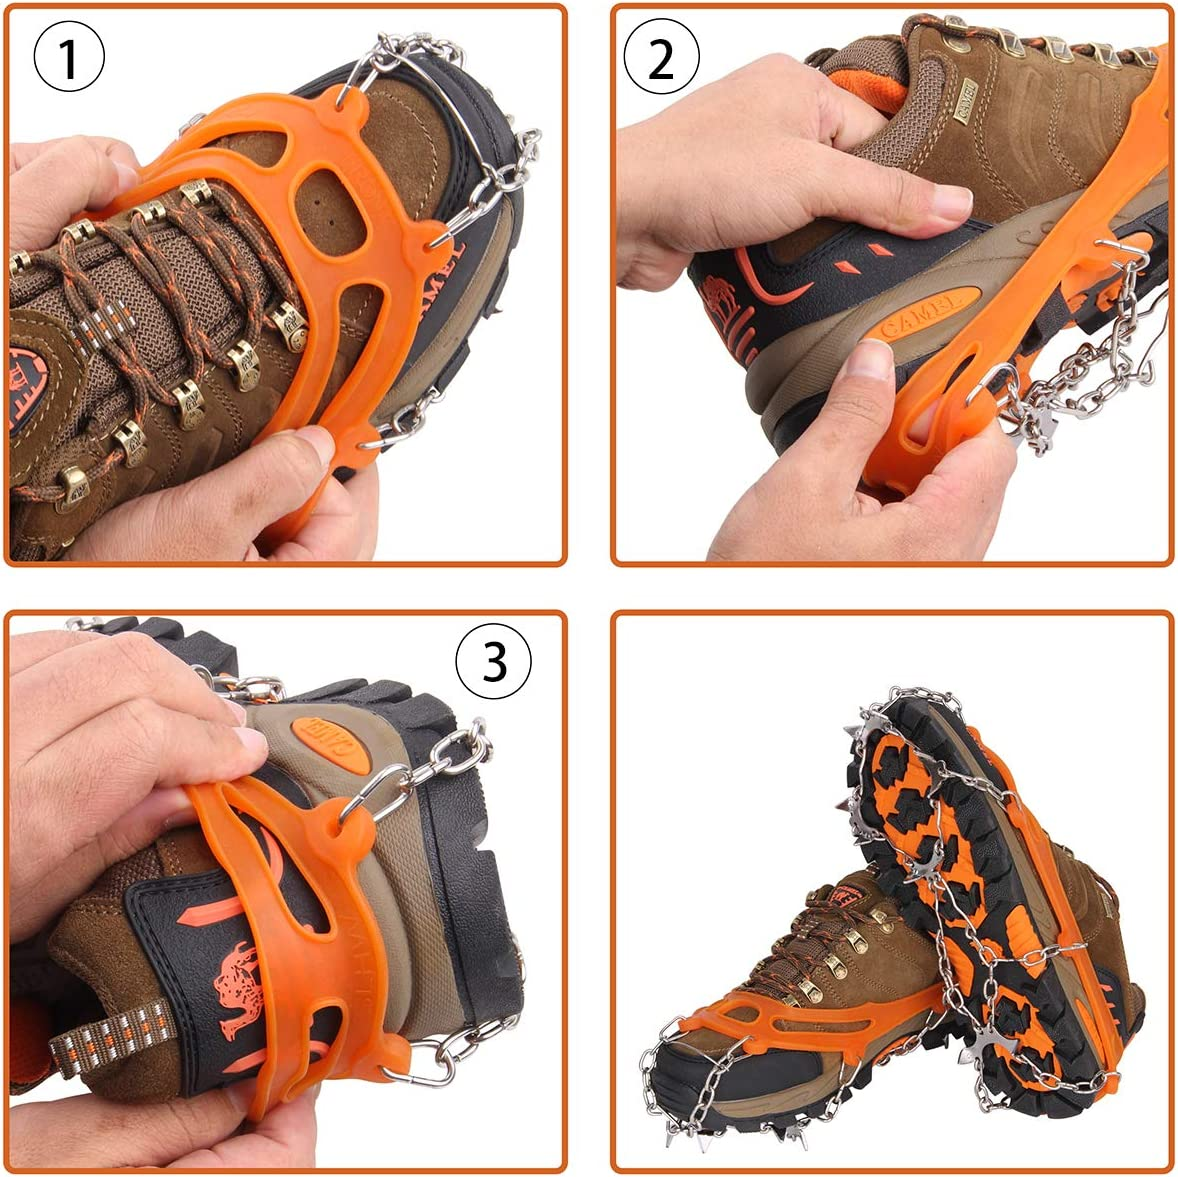 10 Teeth Winter Snow Grippers for Shoes Boots Rubber Ice Grips Stainless Steel Spikes for Walking Hiking Fishing Mountaineering for Women and Men Outdoor Anti-Skid Crampons Ice Cleats Traction